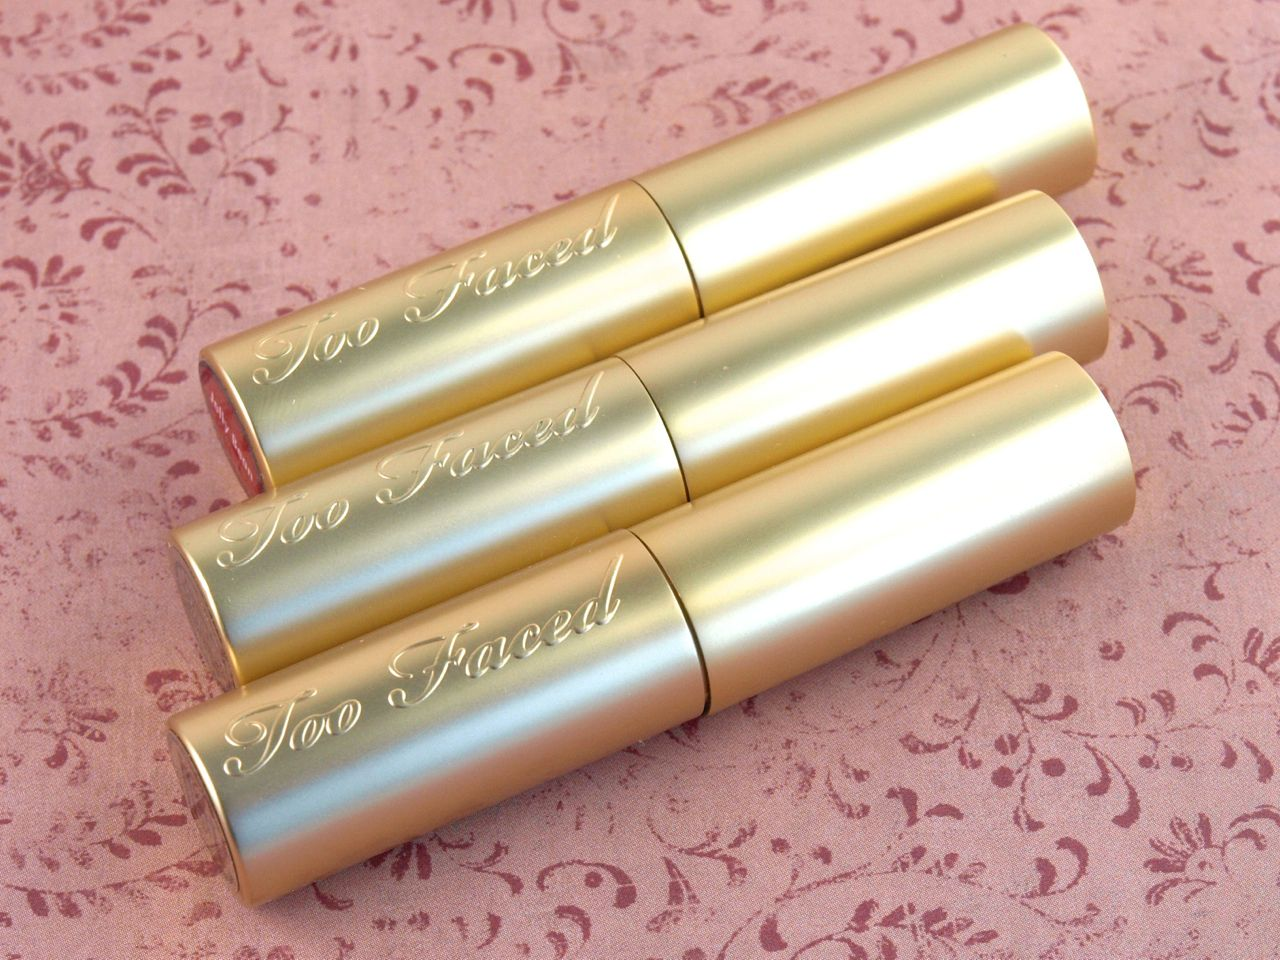 Too Faced La Creme Lip Cream Review and Swatches